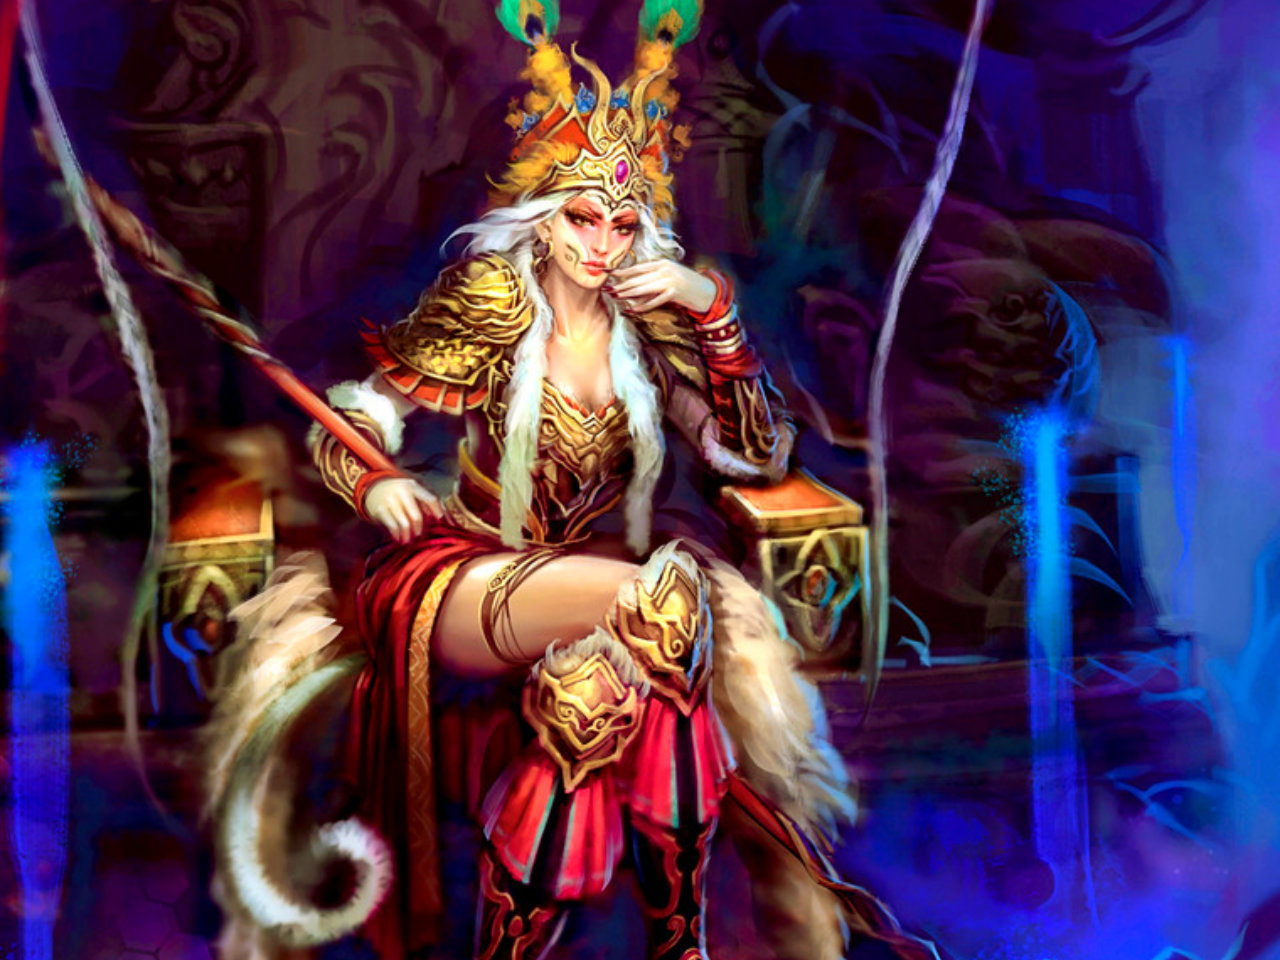 Anime Witch Girl Wallpaper Queen Throne Woman Fantasy Abstract 2560x1440 Hd Wallpaper